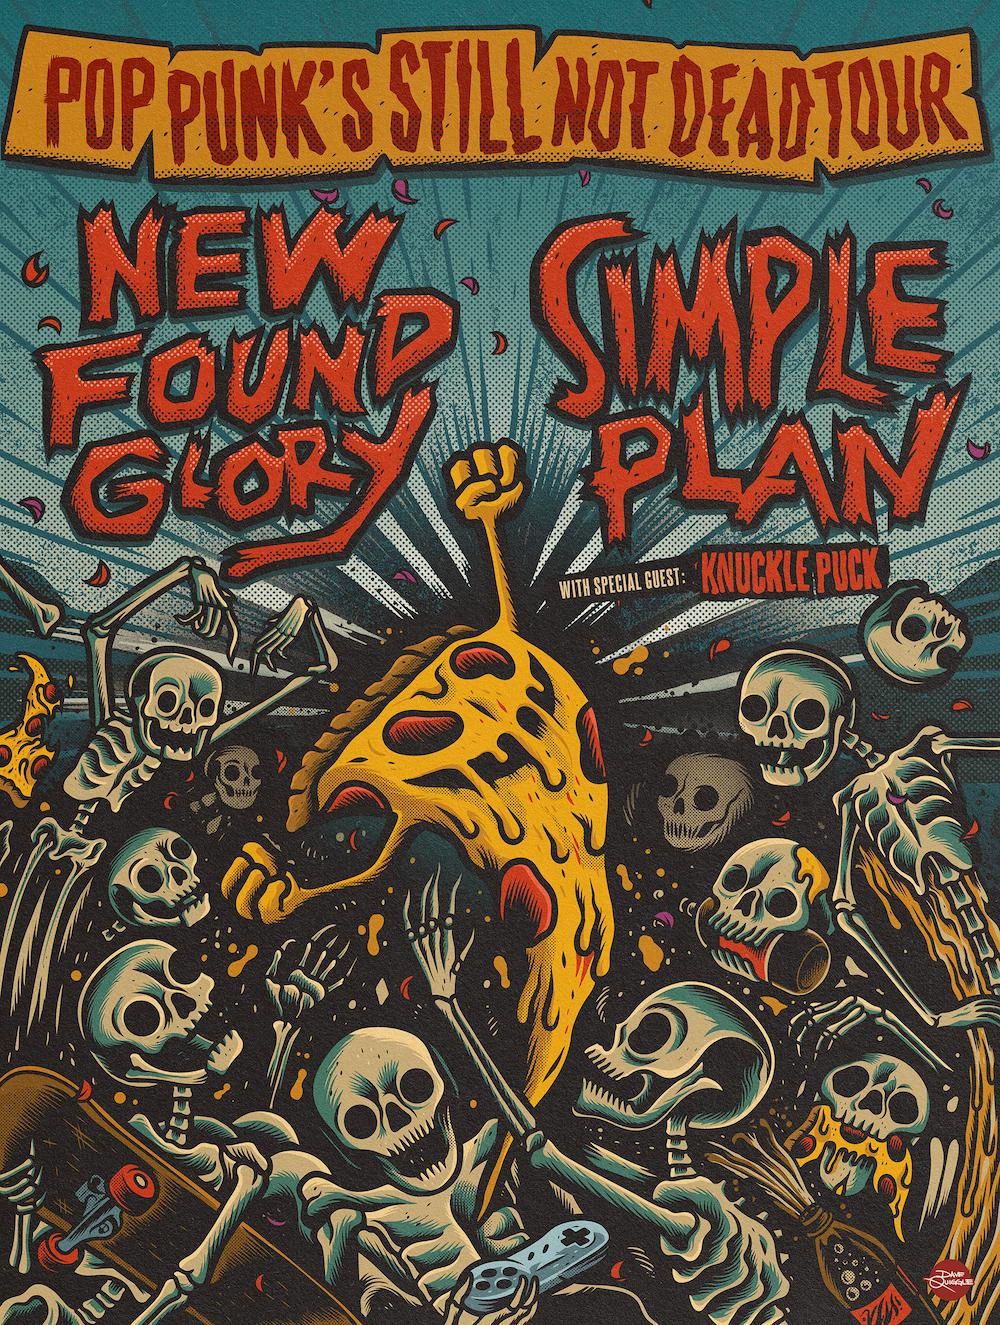 New Found Glory to Hit the Road with Simple Plan This Summer – Pop Punk's Still Not Dead Tour